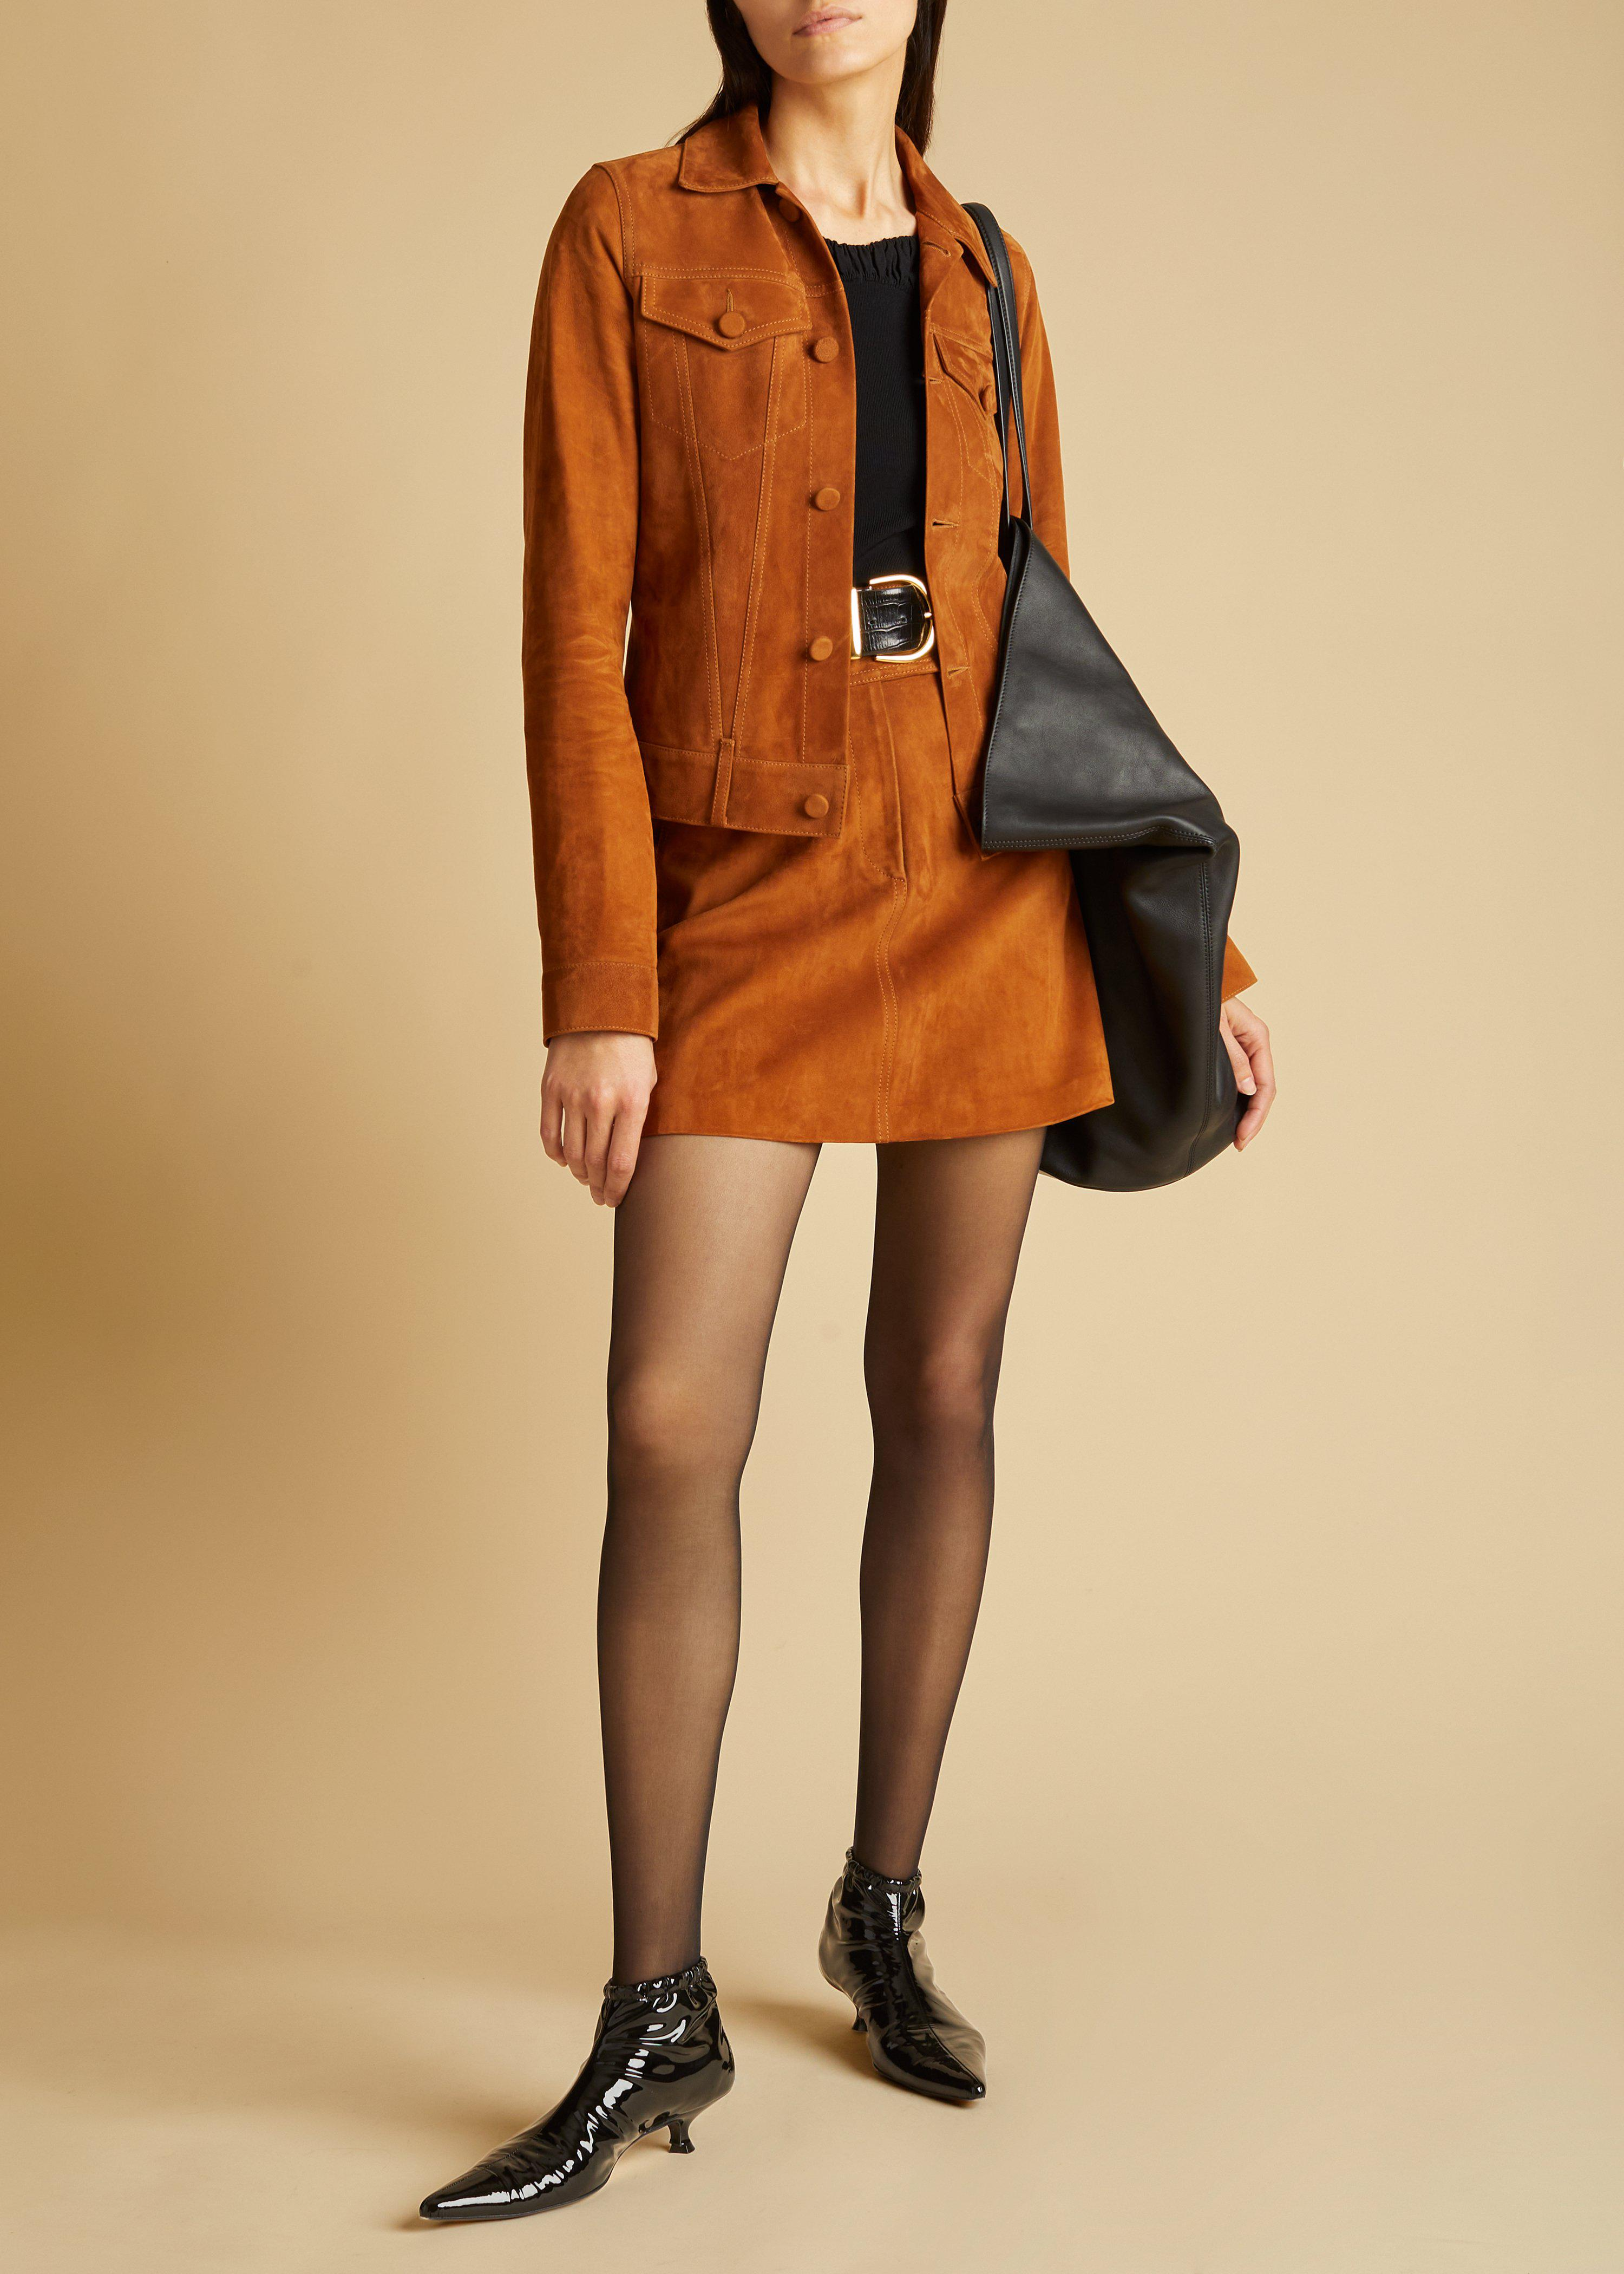 The Giulia Skirt in Chestnut Suede